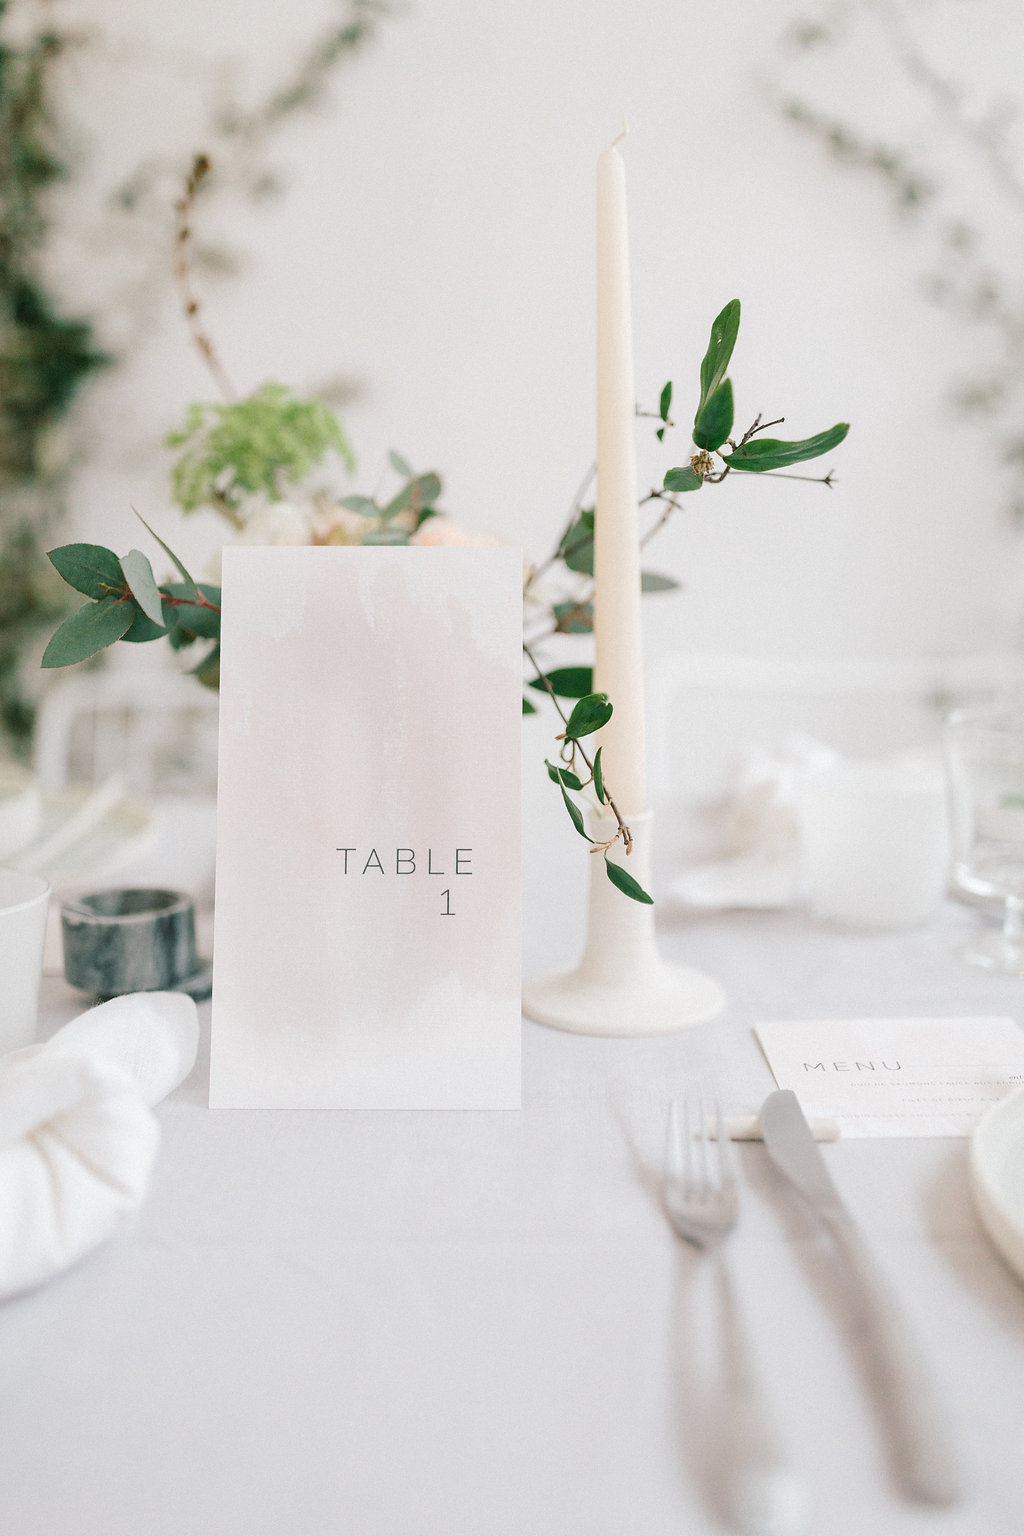 greenery at weddings - photo by Julien Bonjour Photographe http://ruffledblog.com/airy-industrial-wedding-inspiration-for-spring